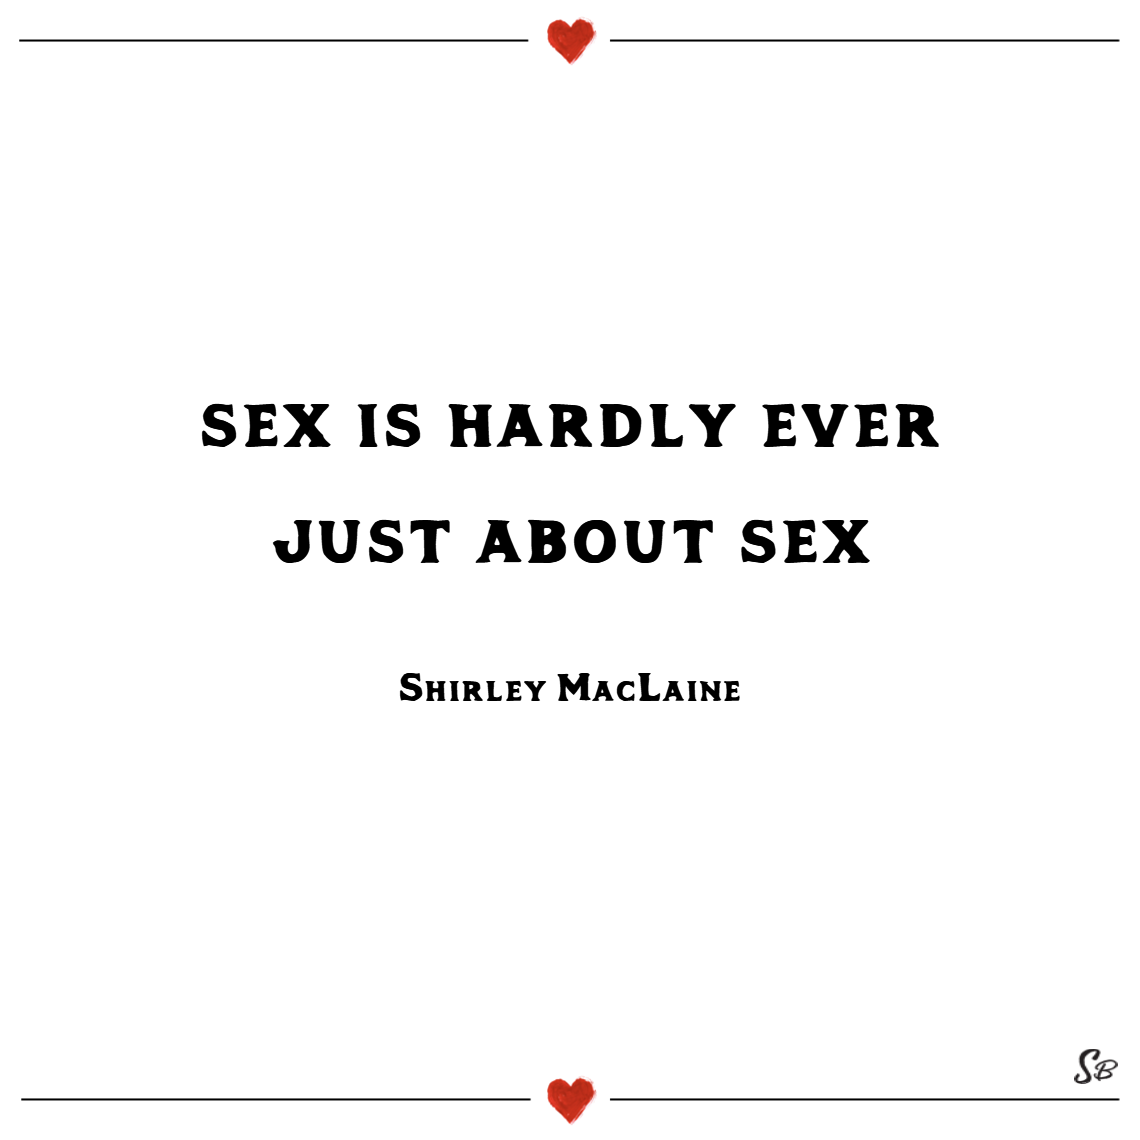 Sex is hardly ever just about sex. – shirley maclaine